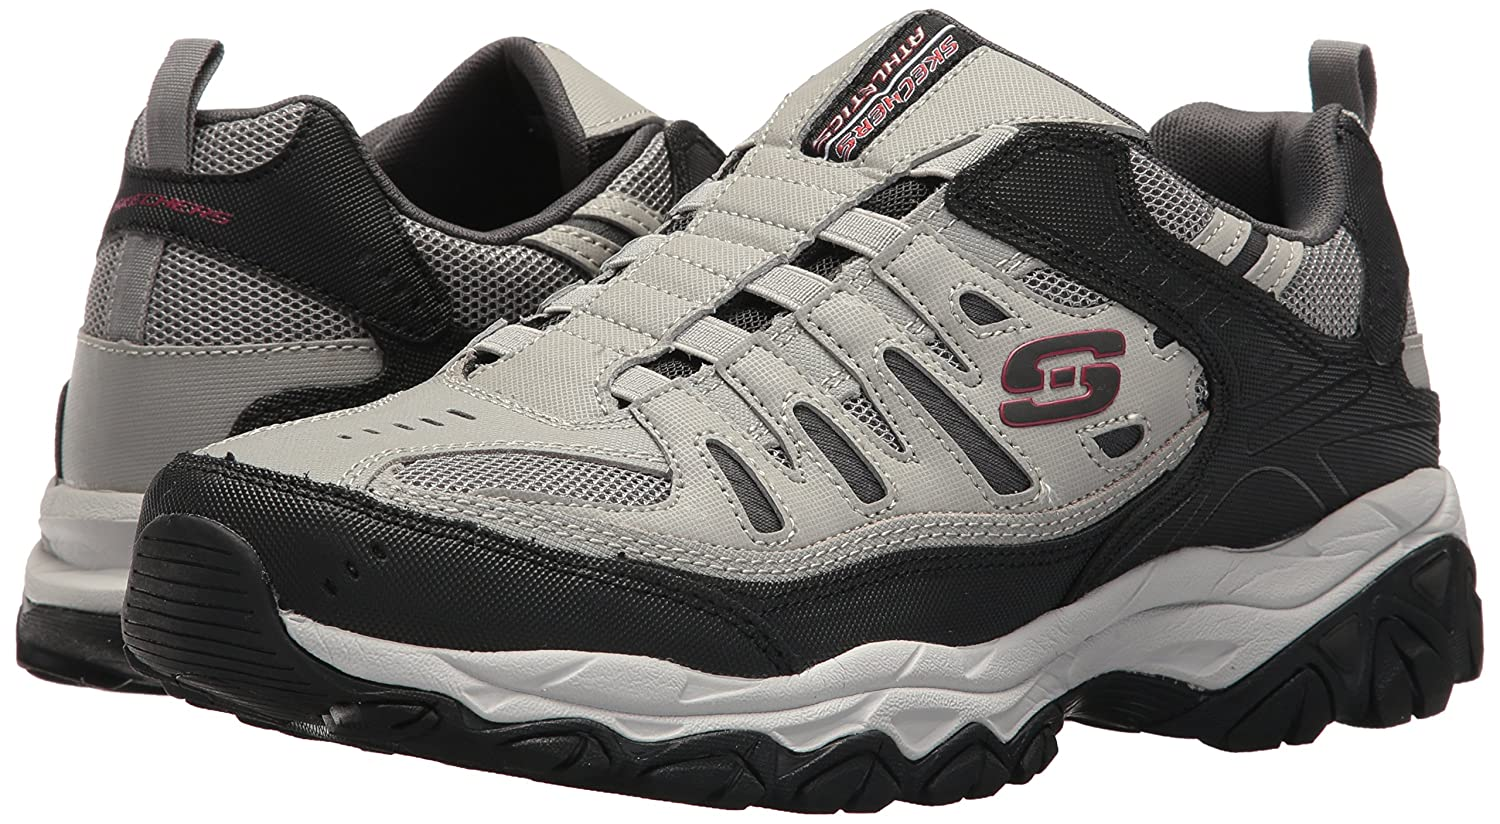 Skechers-Afterburn-Memory-Foam-M-Fit-Men-039-s-Sport-After-Burn-Sneakers-Shoes thumbnail 55